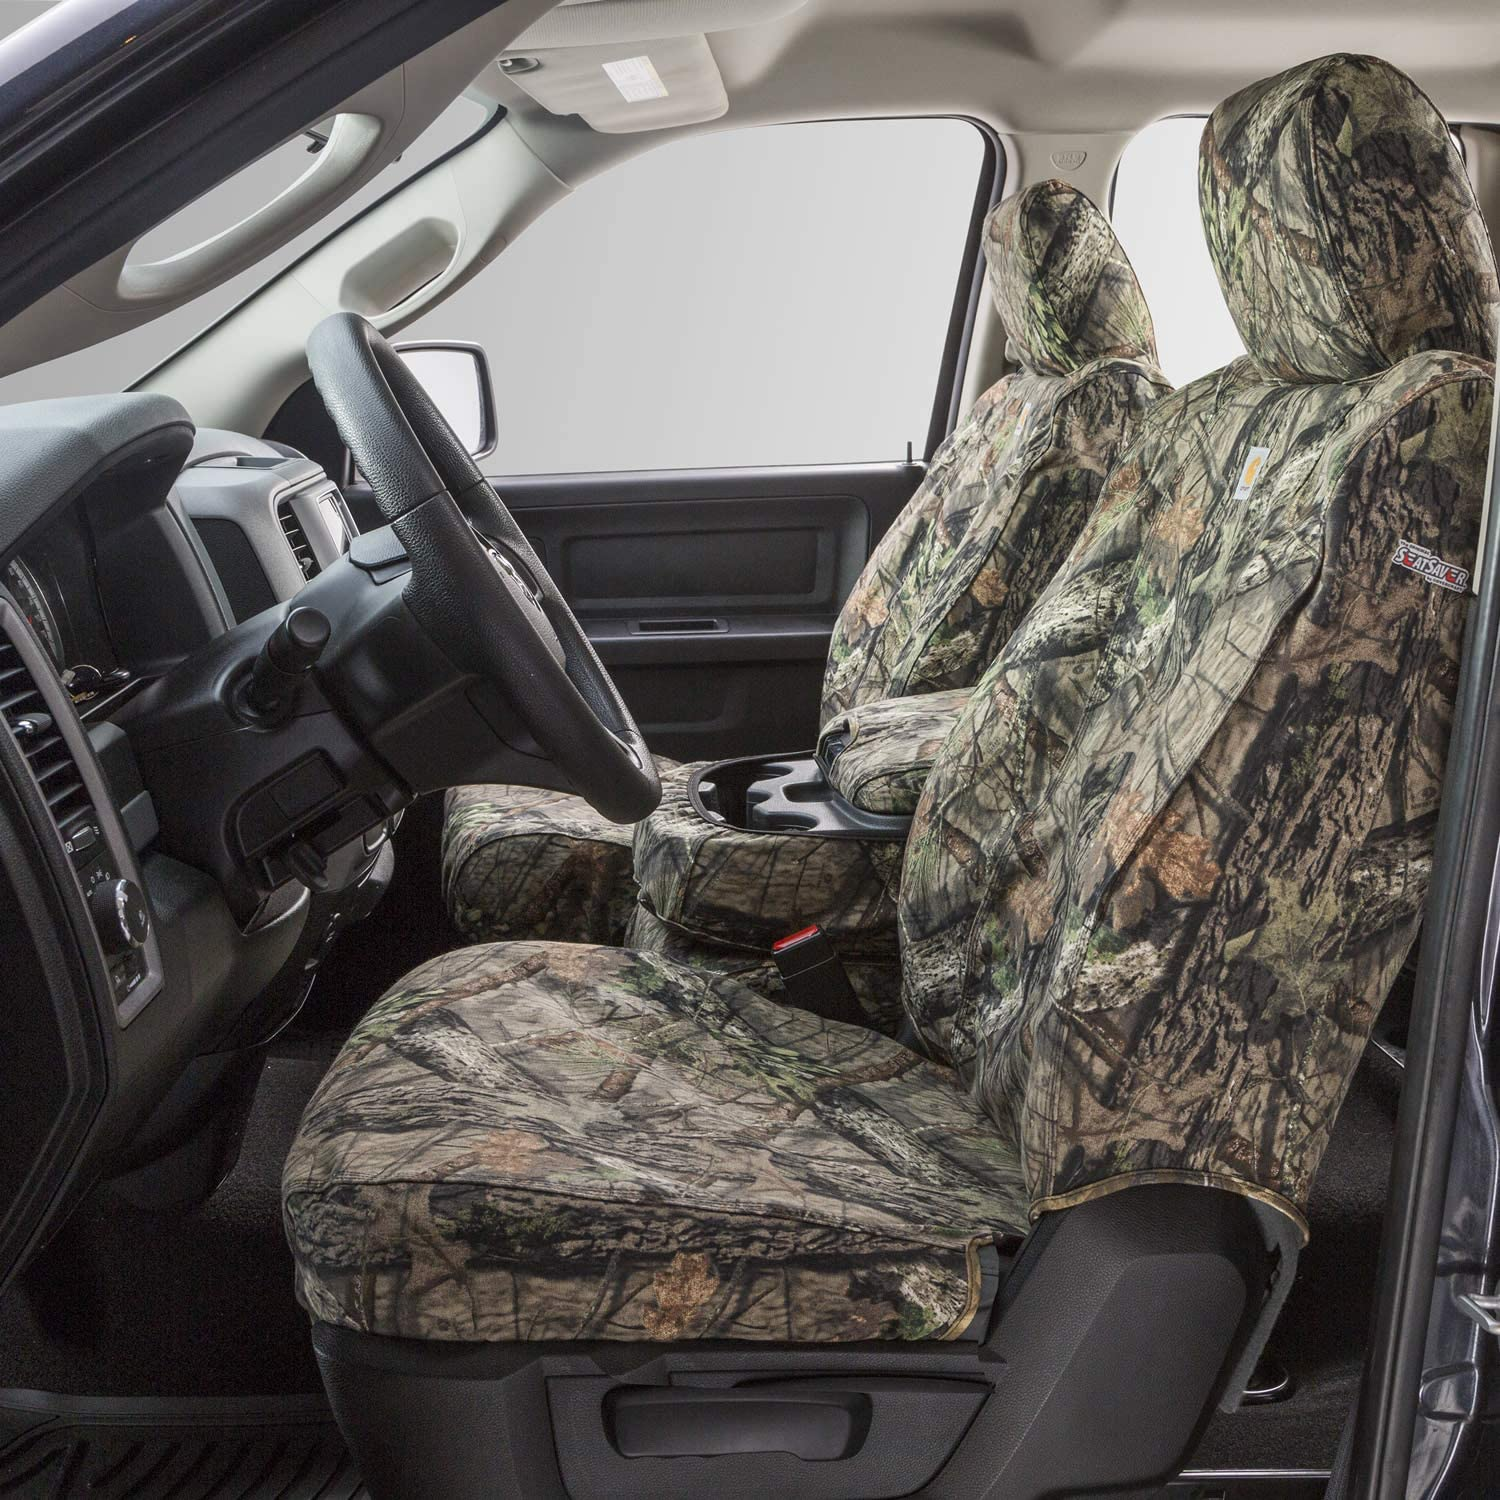 Covercraft Carhartt Mossy Oak Camo SeatSaver Second Row Custom Fit Seat Cover for Select Toyota Tacoma Models - Duck Weave (Break-Up Country) - SSC8452CAMB